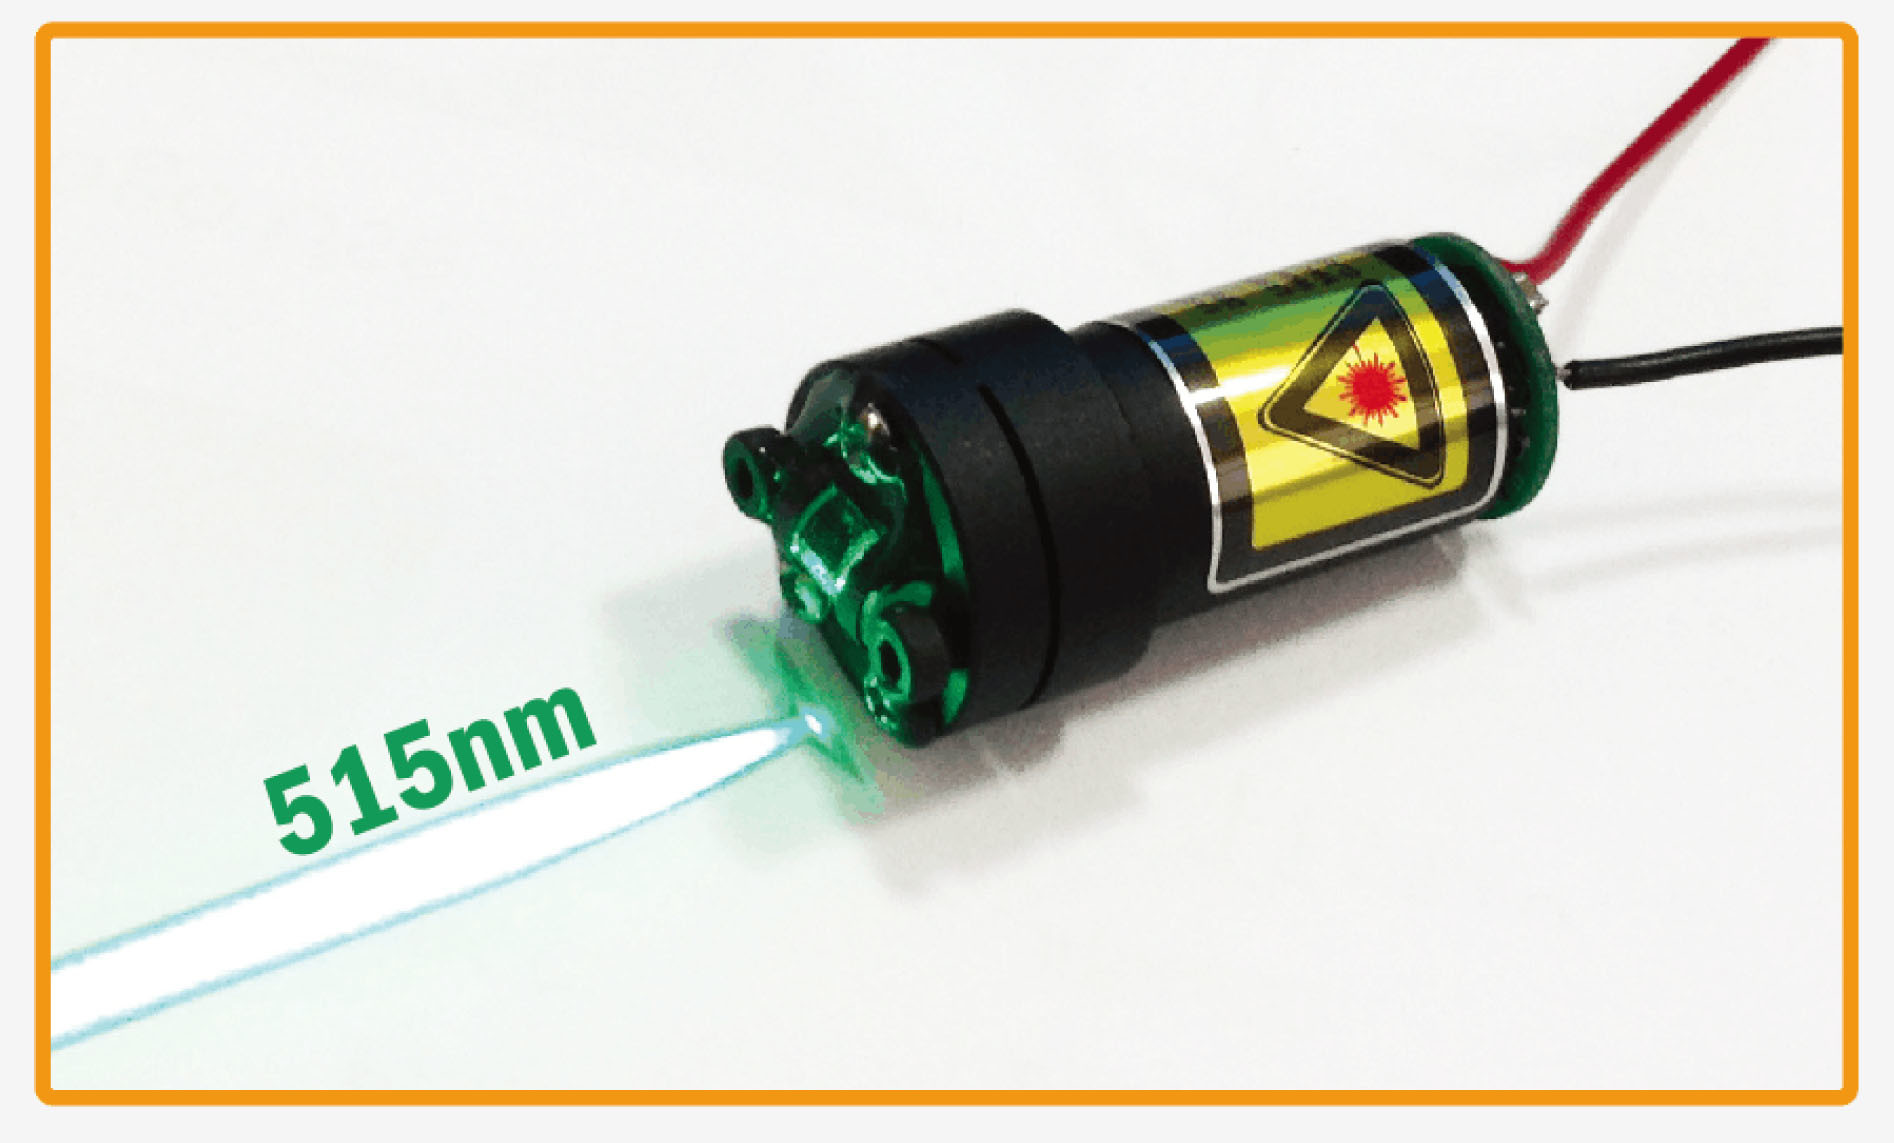 Industrial Laser Modules Danpon Red and Green Laser Modules Appliable to Golf. Sewing Machine